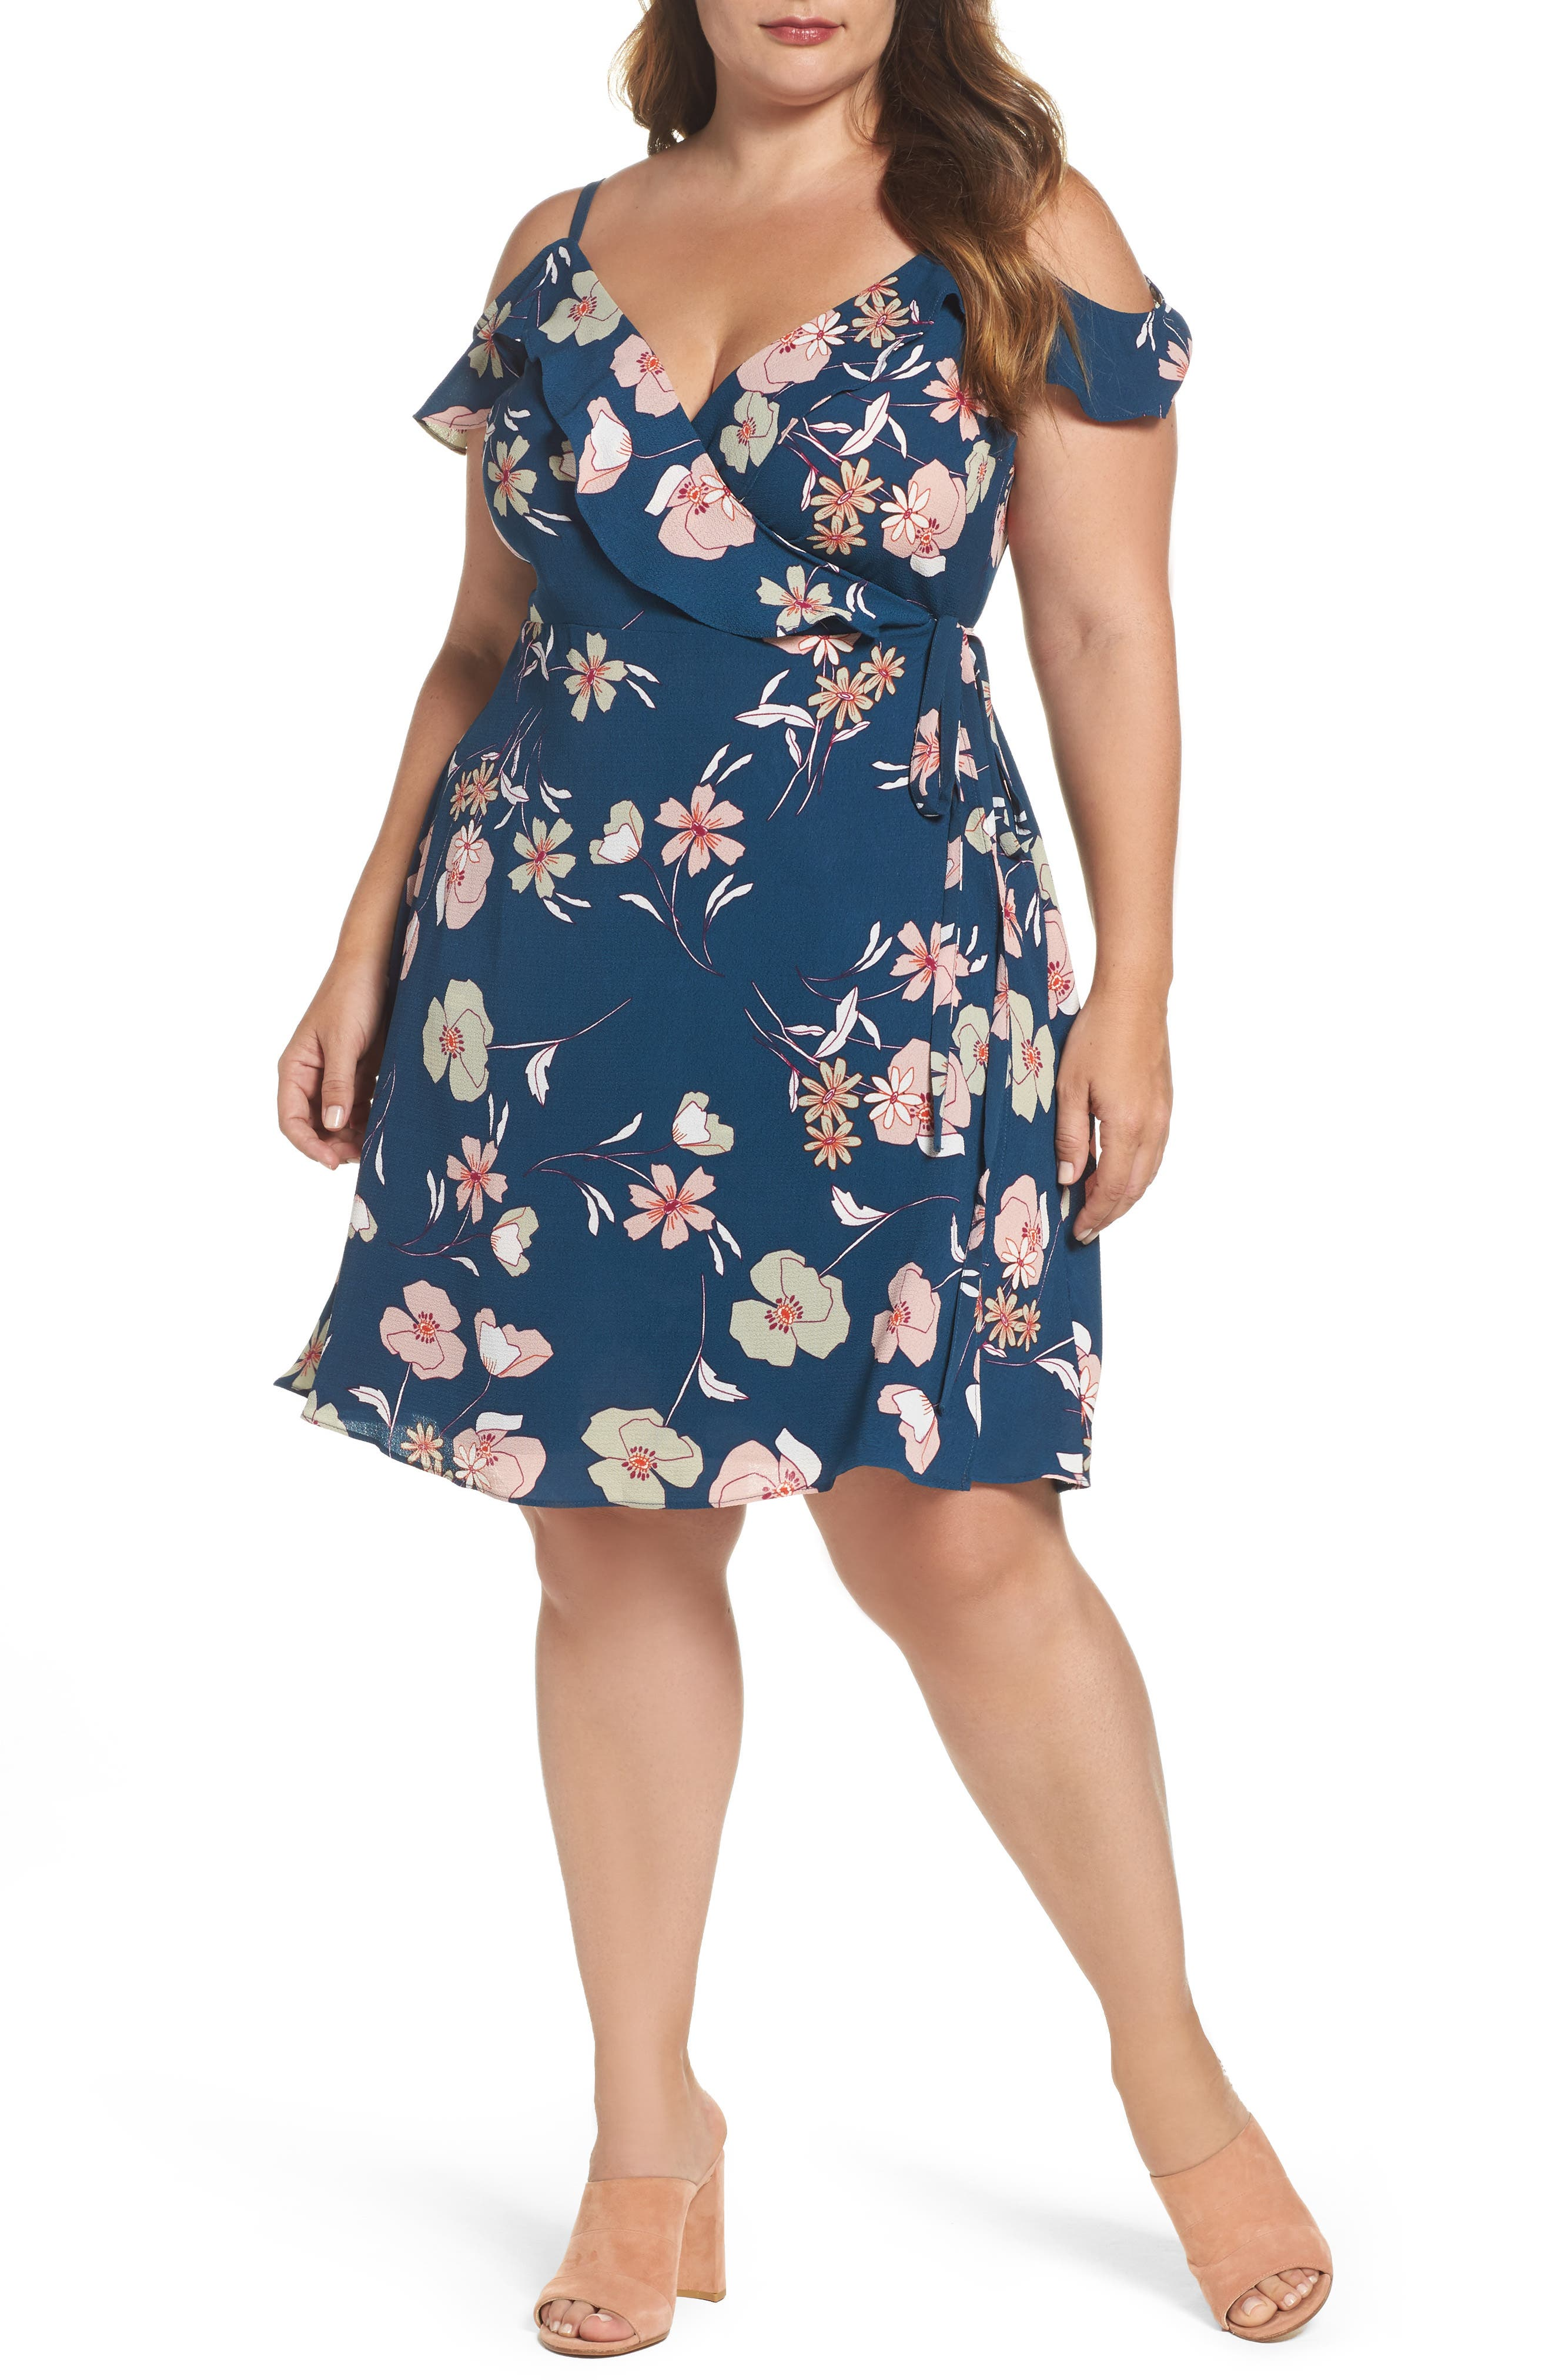 Alternate Image 1 Selected - City Chic Lulu Floral Wrap Dress (Plus Size)